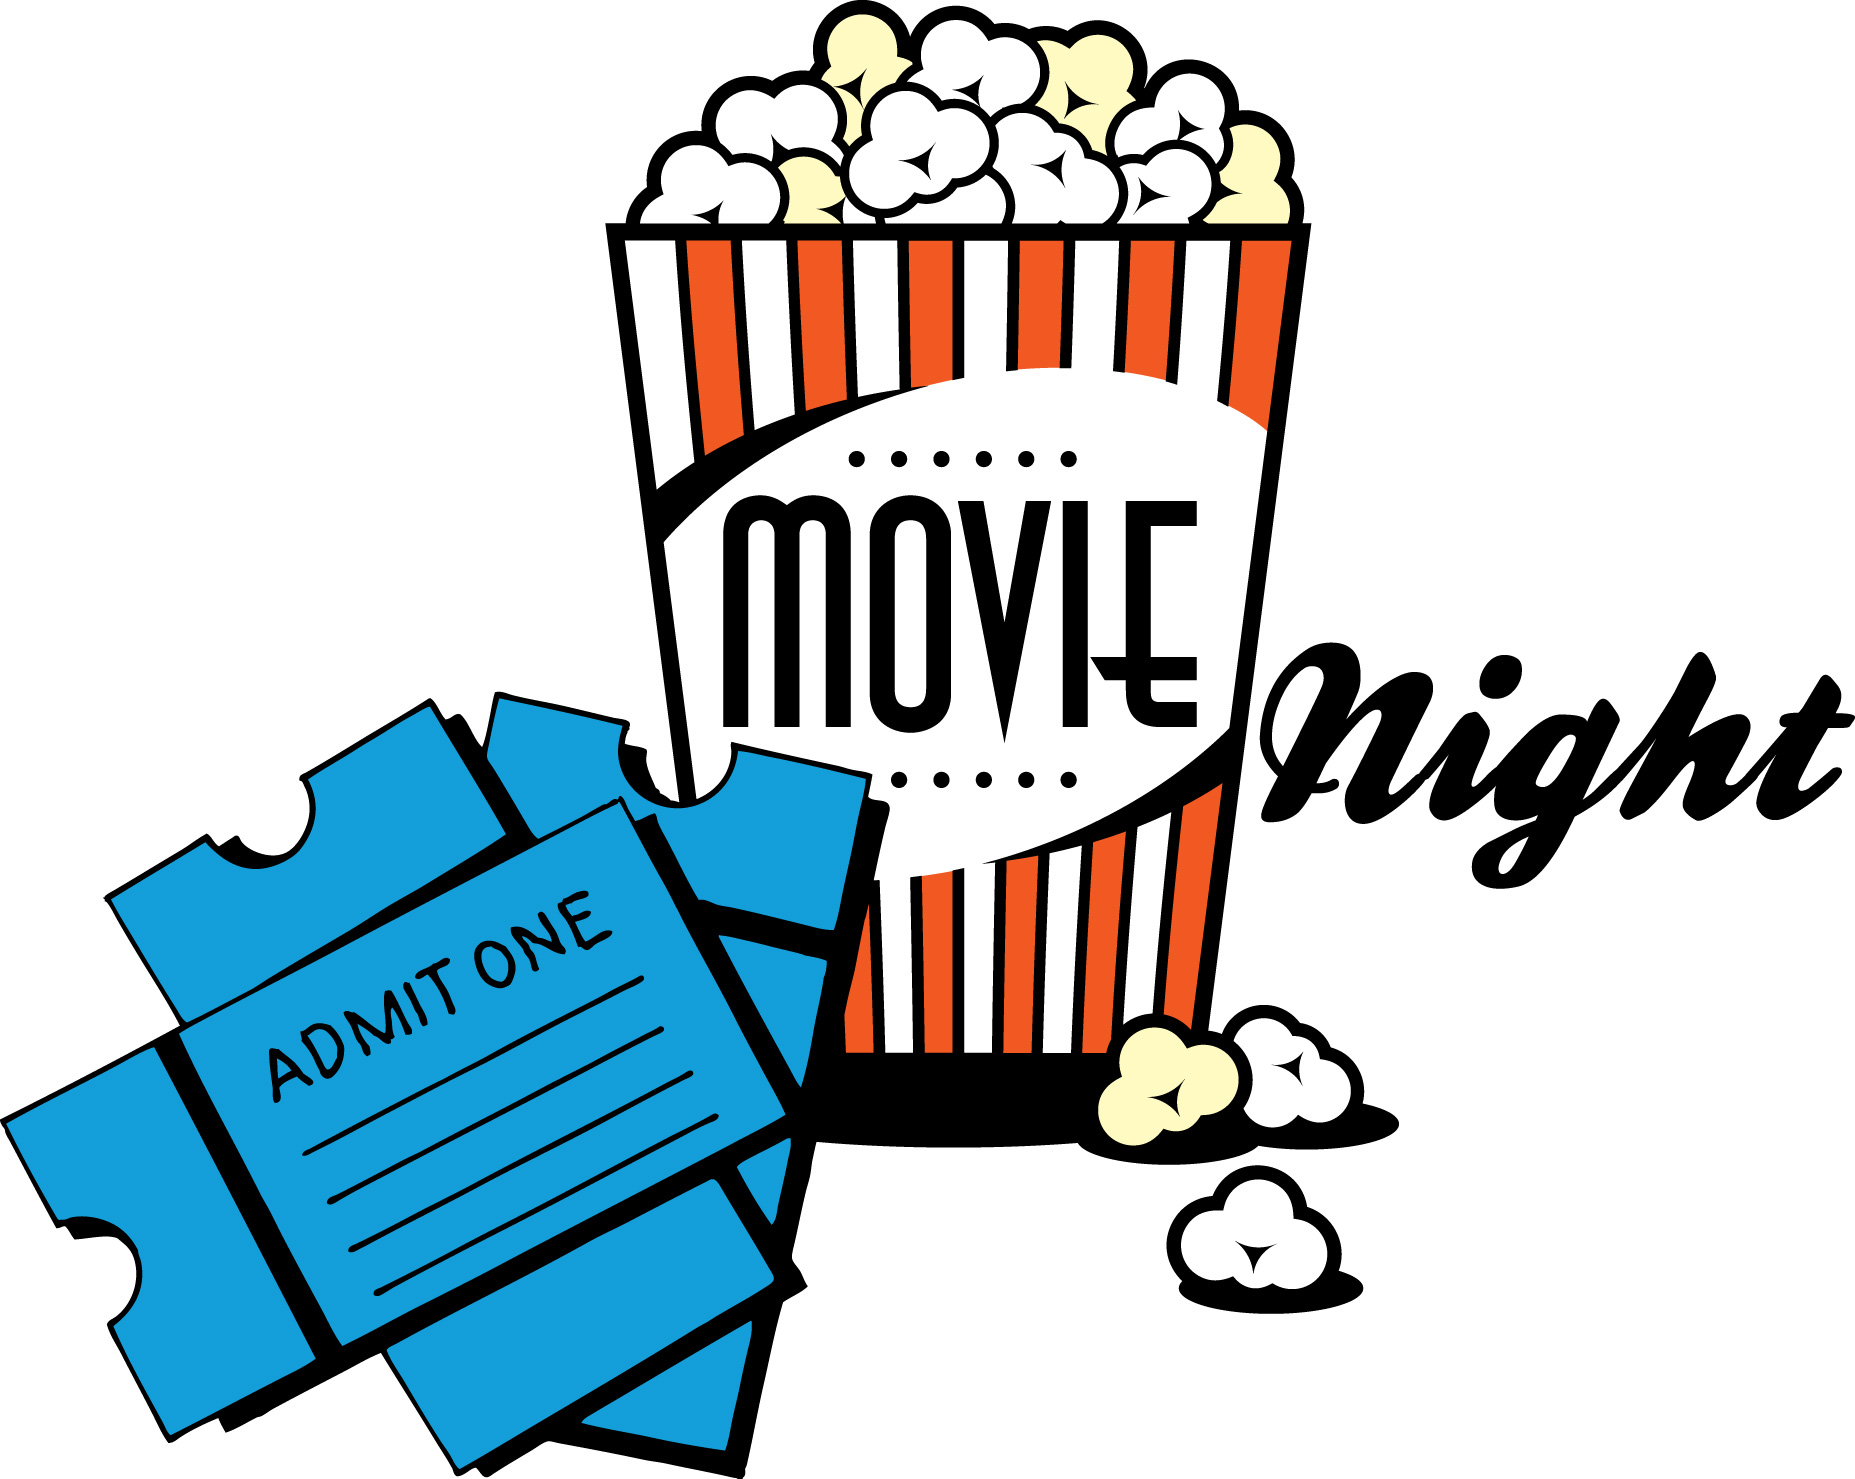 Movie clipart Movie%20night%20popcorn%20clipart Images Clipart Free Night